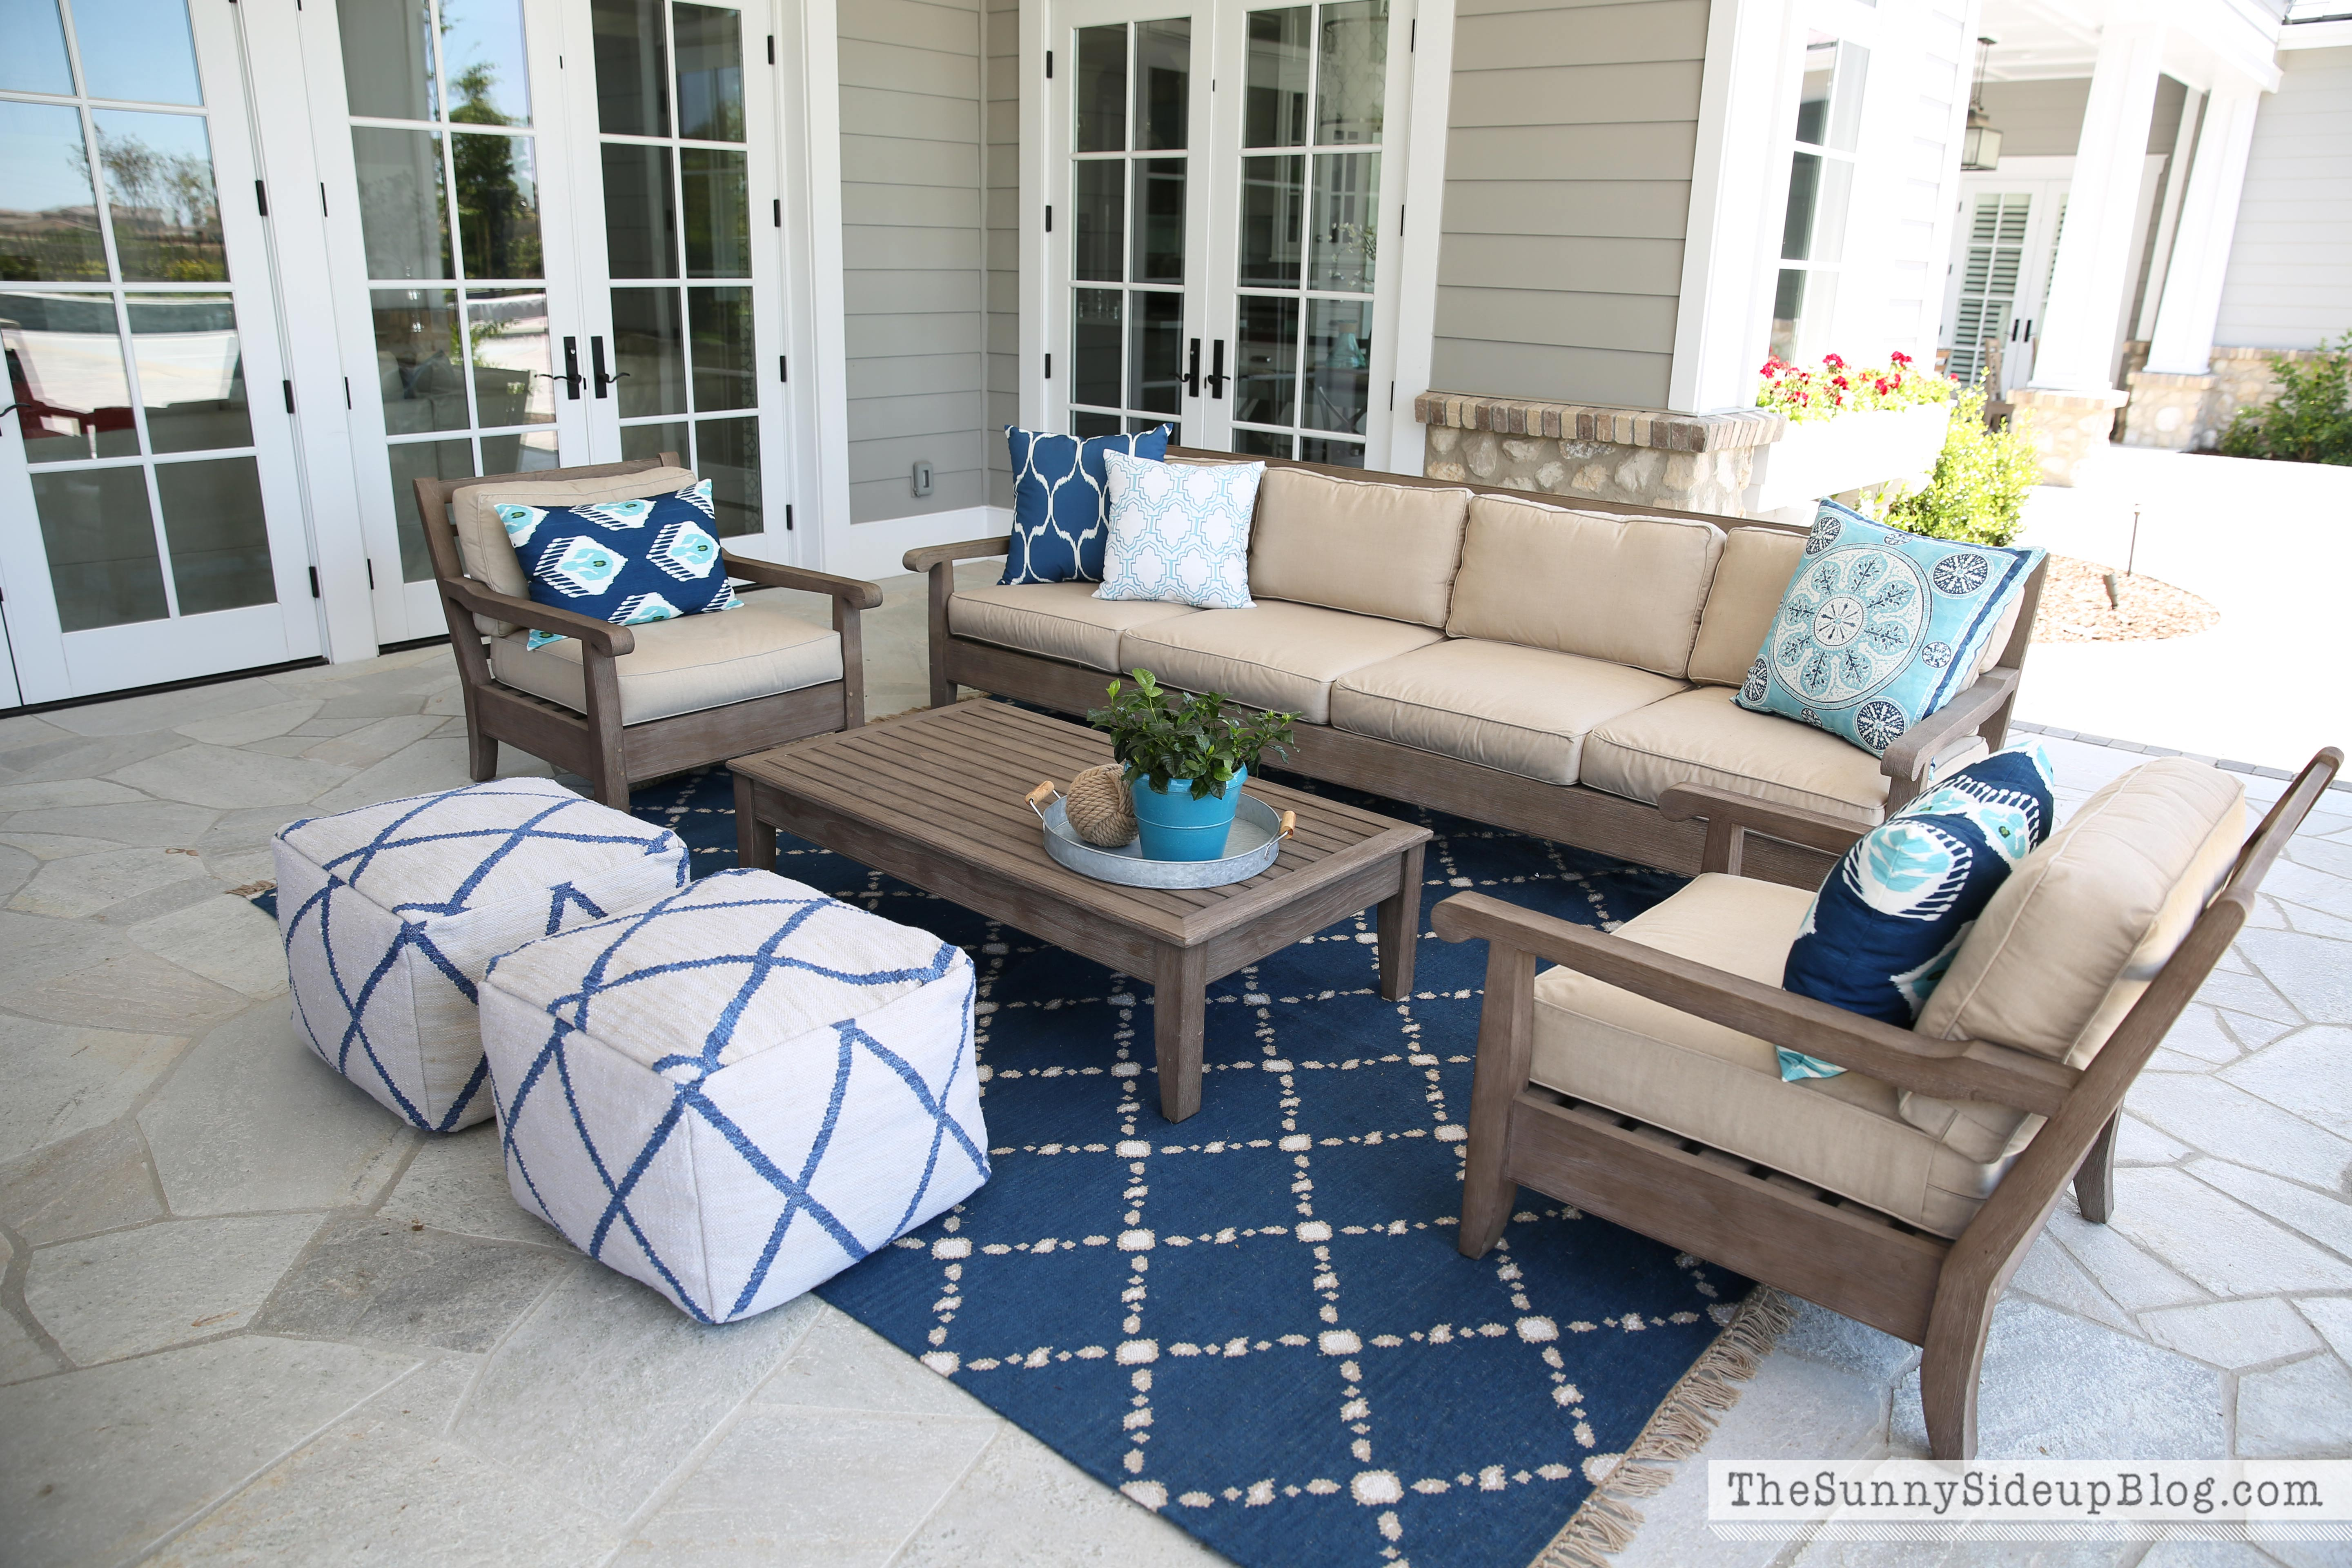 Outdoor Entertaining Area The Sunny Side Up Blog